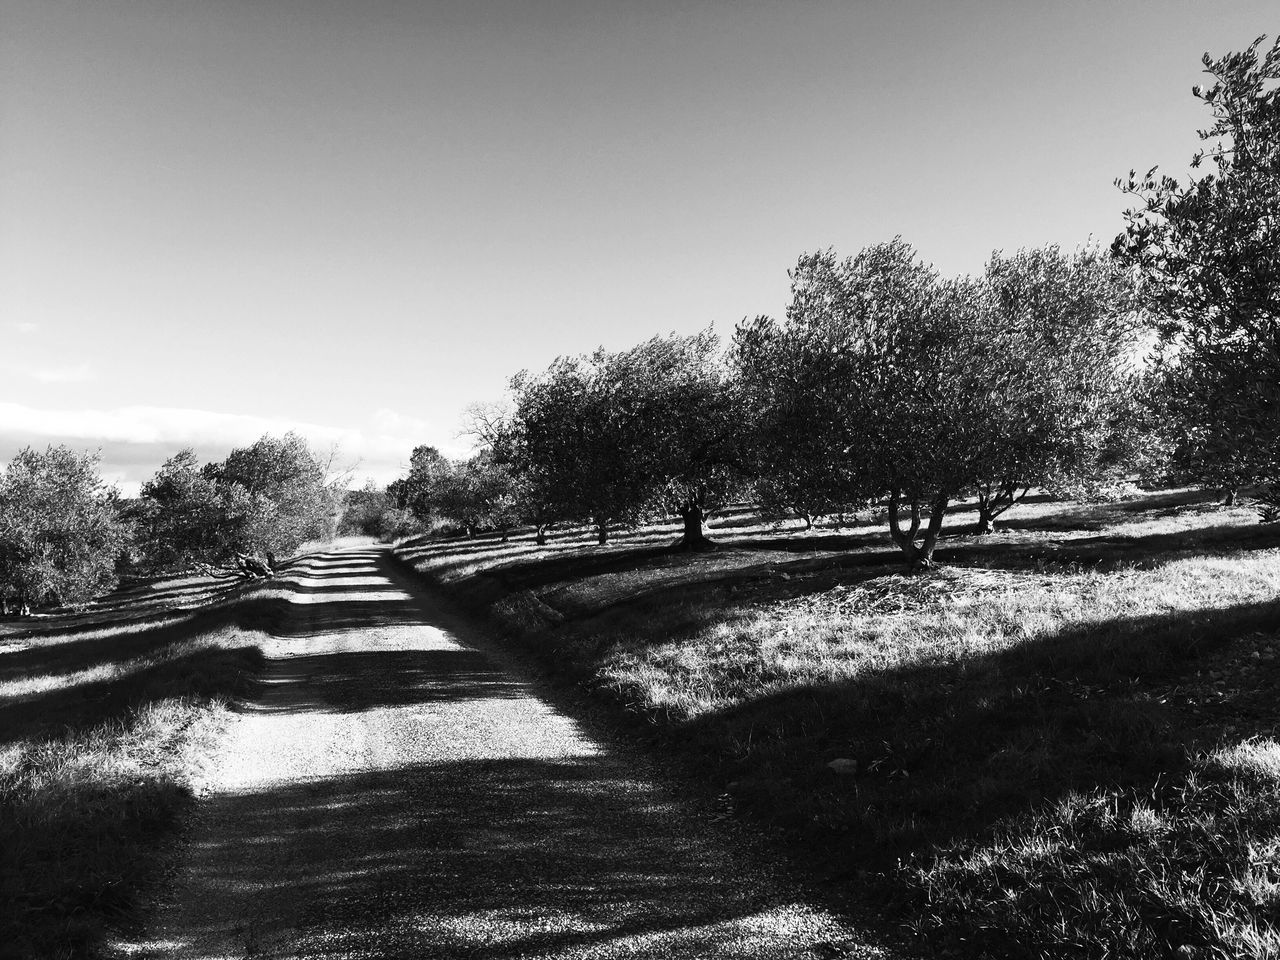 Landscape_Collection Landscape_photography Nature Black & White Blackandwhite Clear Sky Beauty In Nature A Place To Be Olive Tree